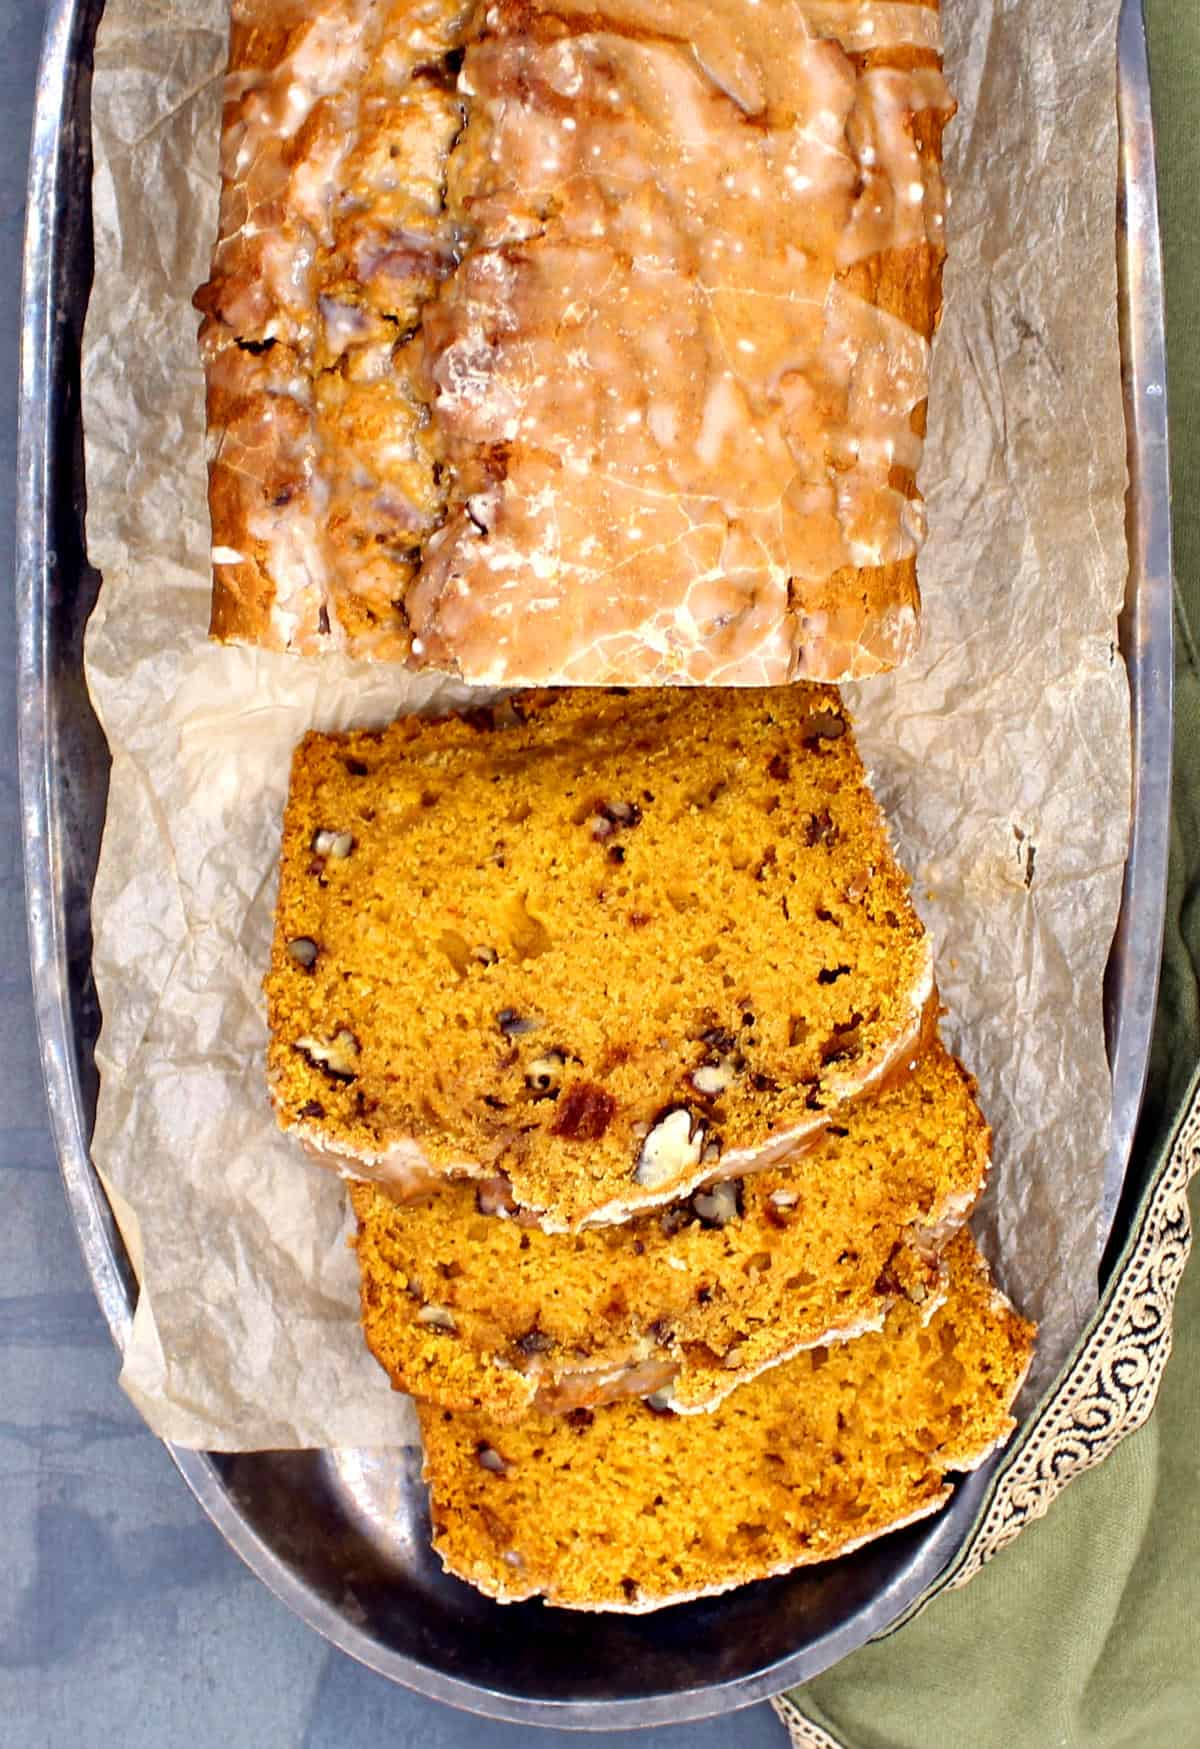 Overhead photo of a glazed vegan pumpkin bread with three moist slices with pecans on a silver tray.